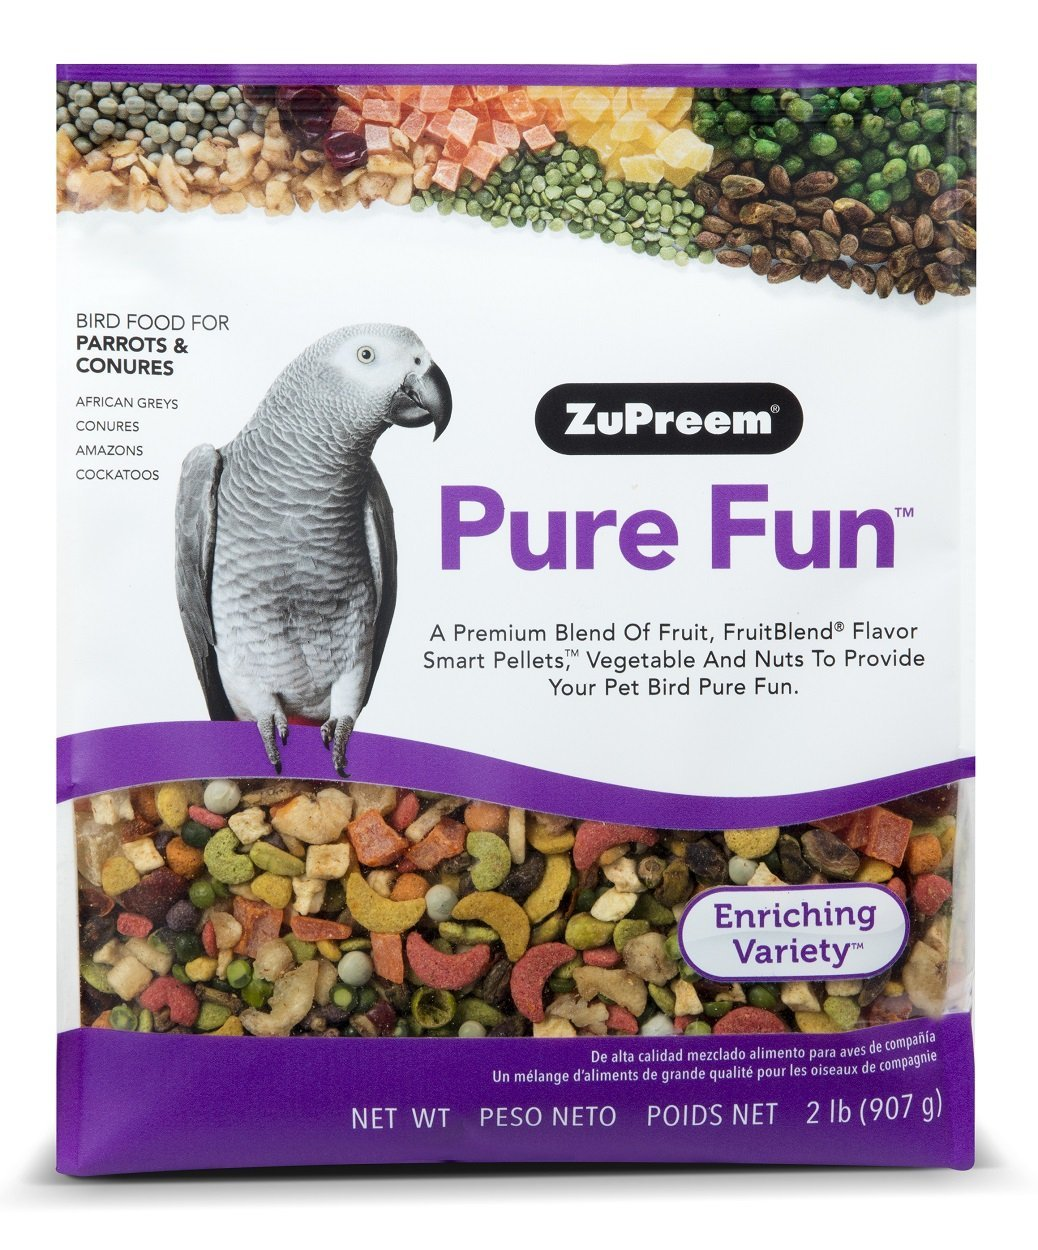 ZuPreem Pure Fun Bird Food for Parrots & Conures, NET WT 2LB (907g) by ZuPreem